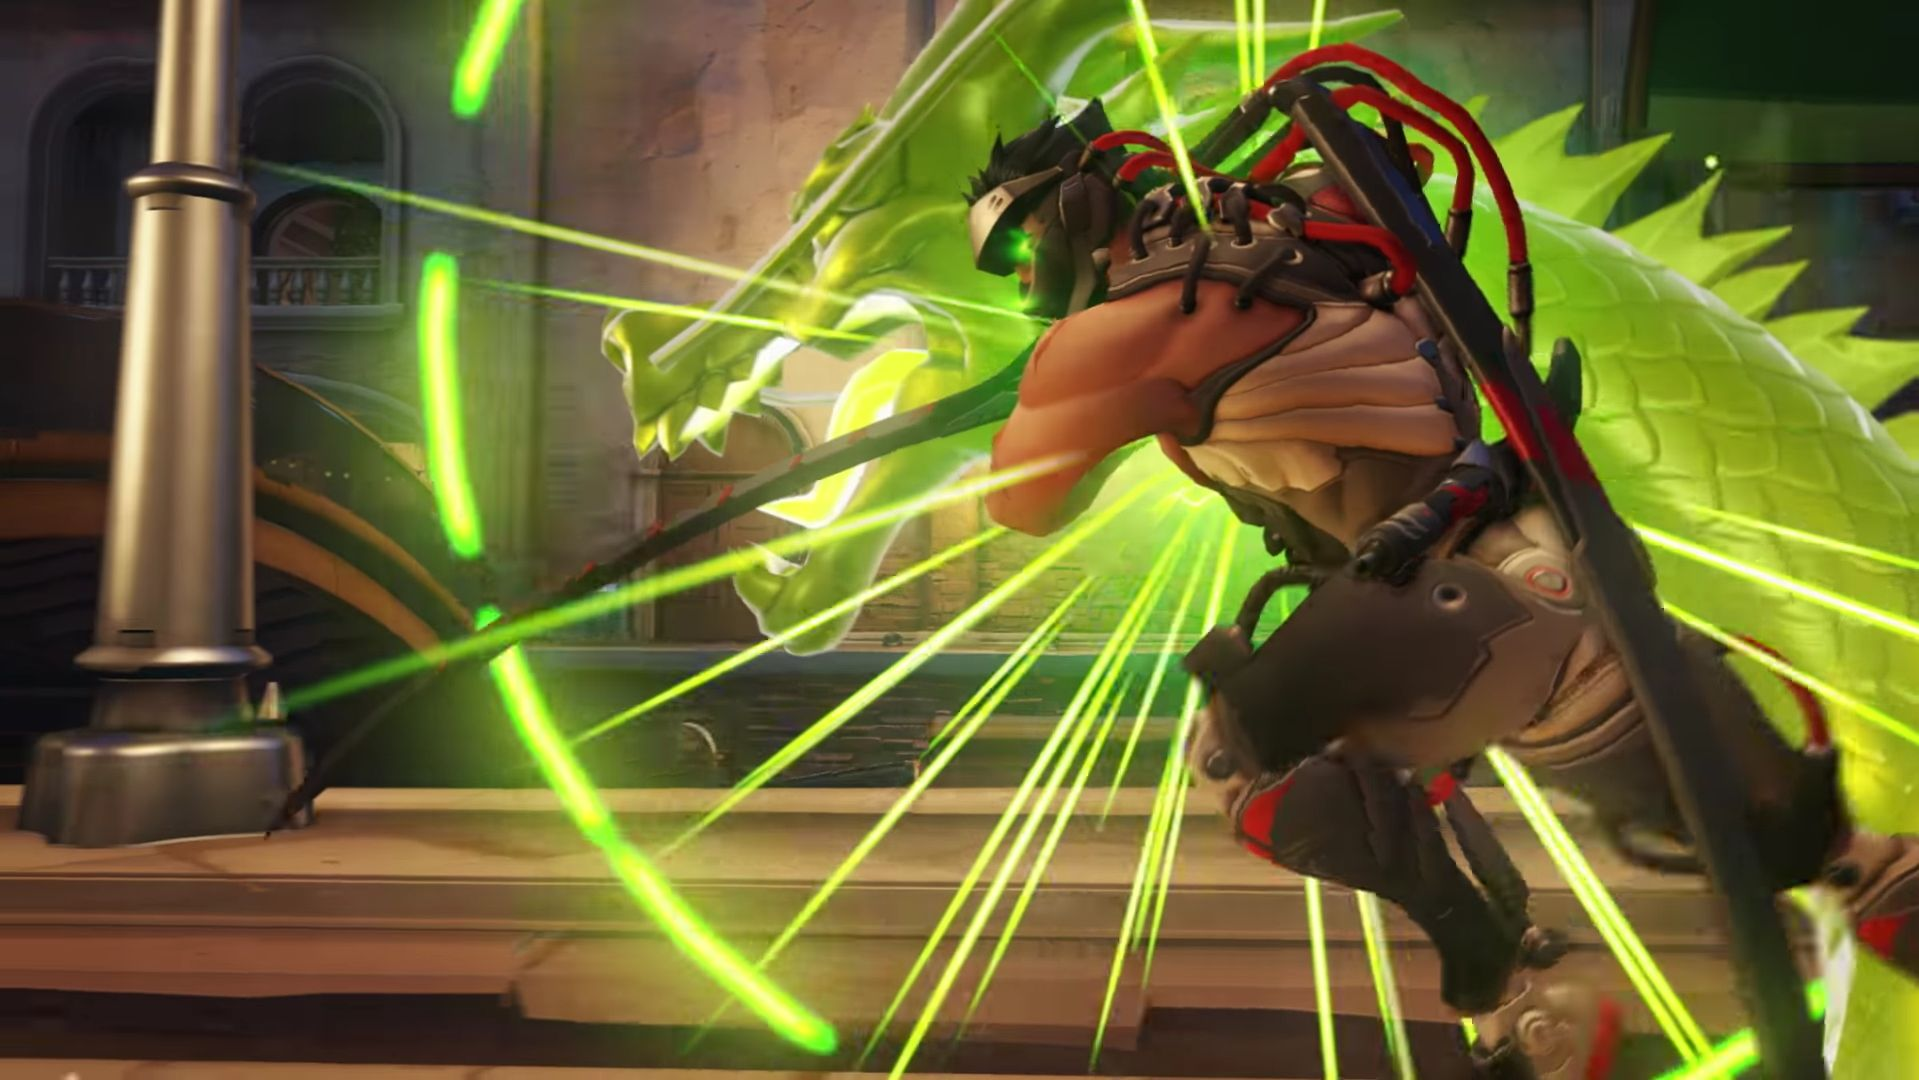 Overwatch Retribution vergeltung Genji Cinematic